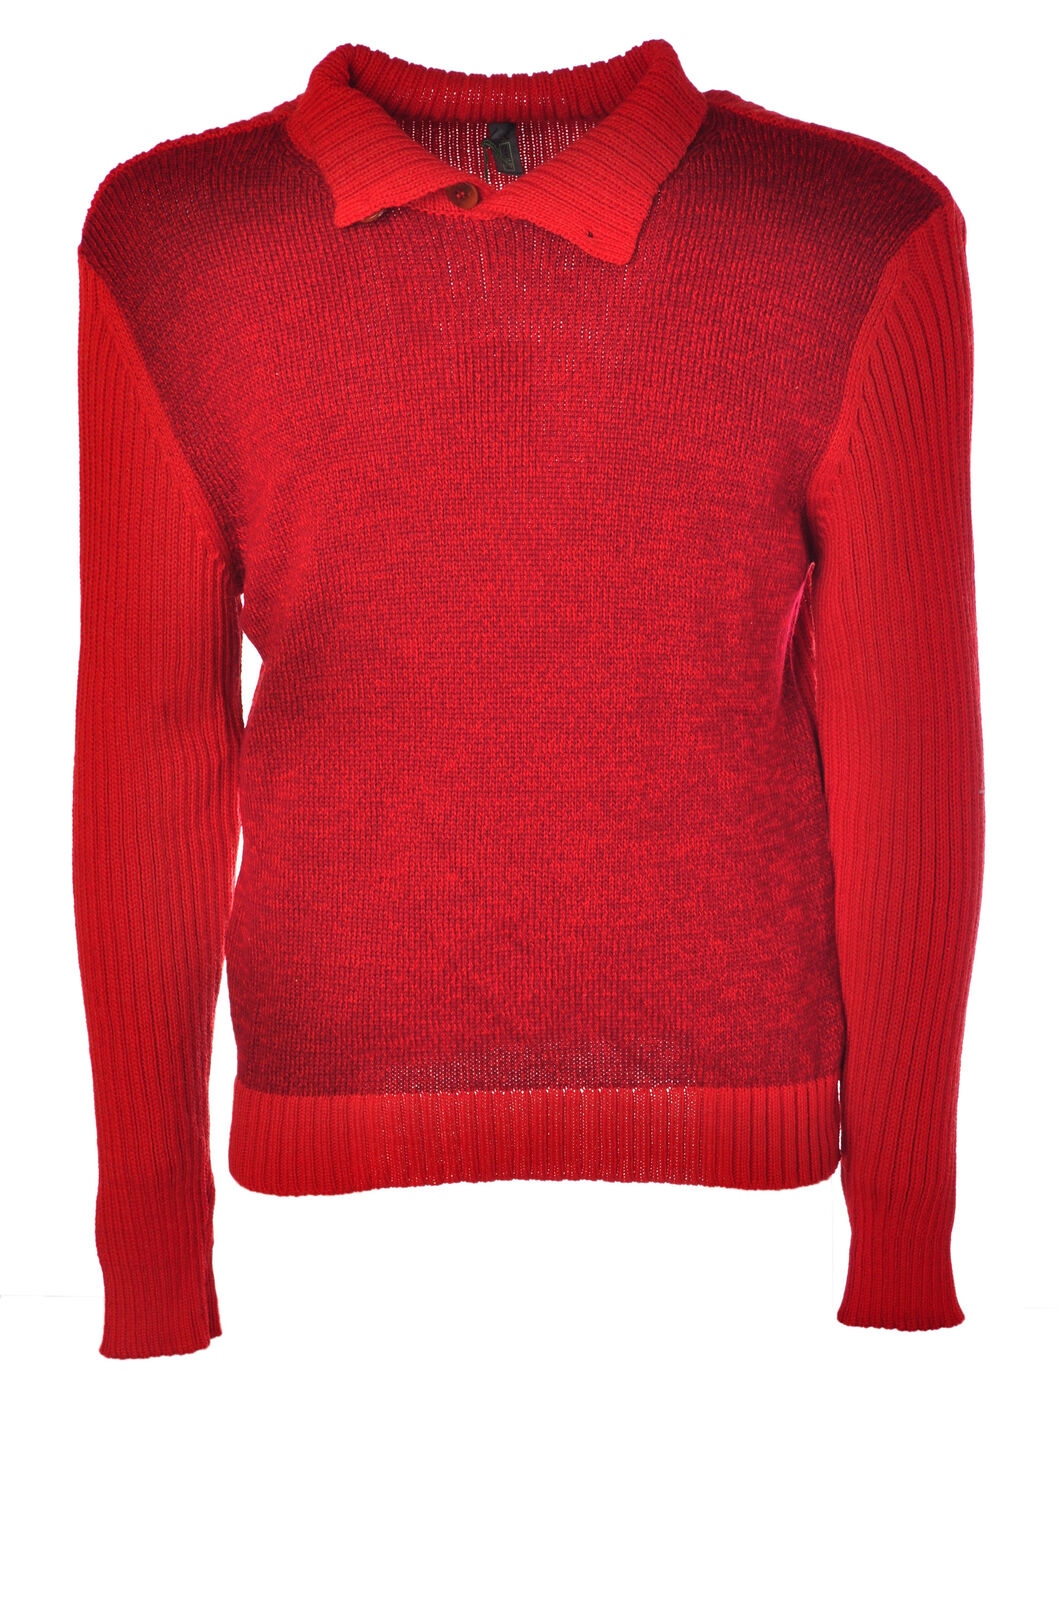 Almeria  -  Sweaters - Male - ROT - 2835331N173817